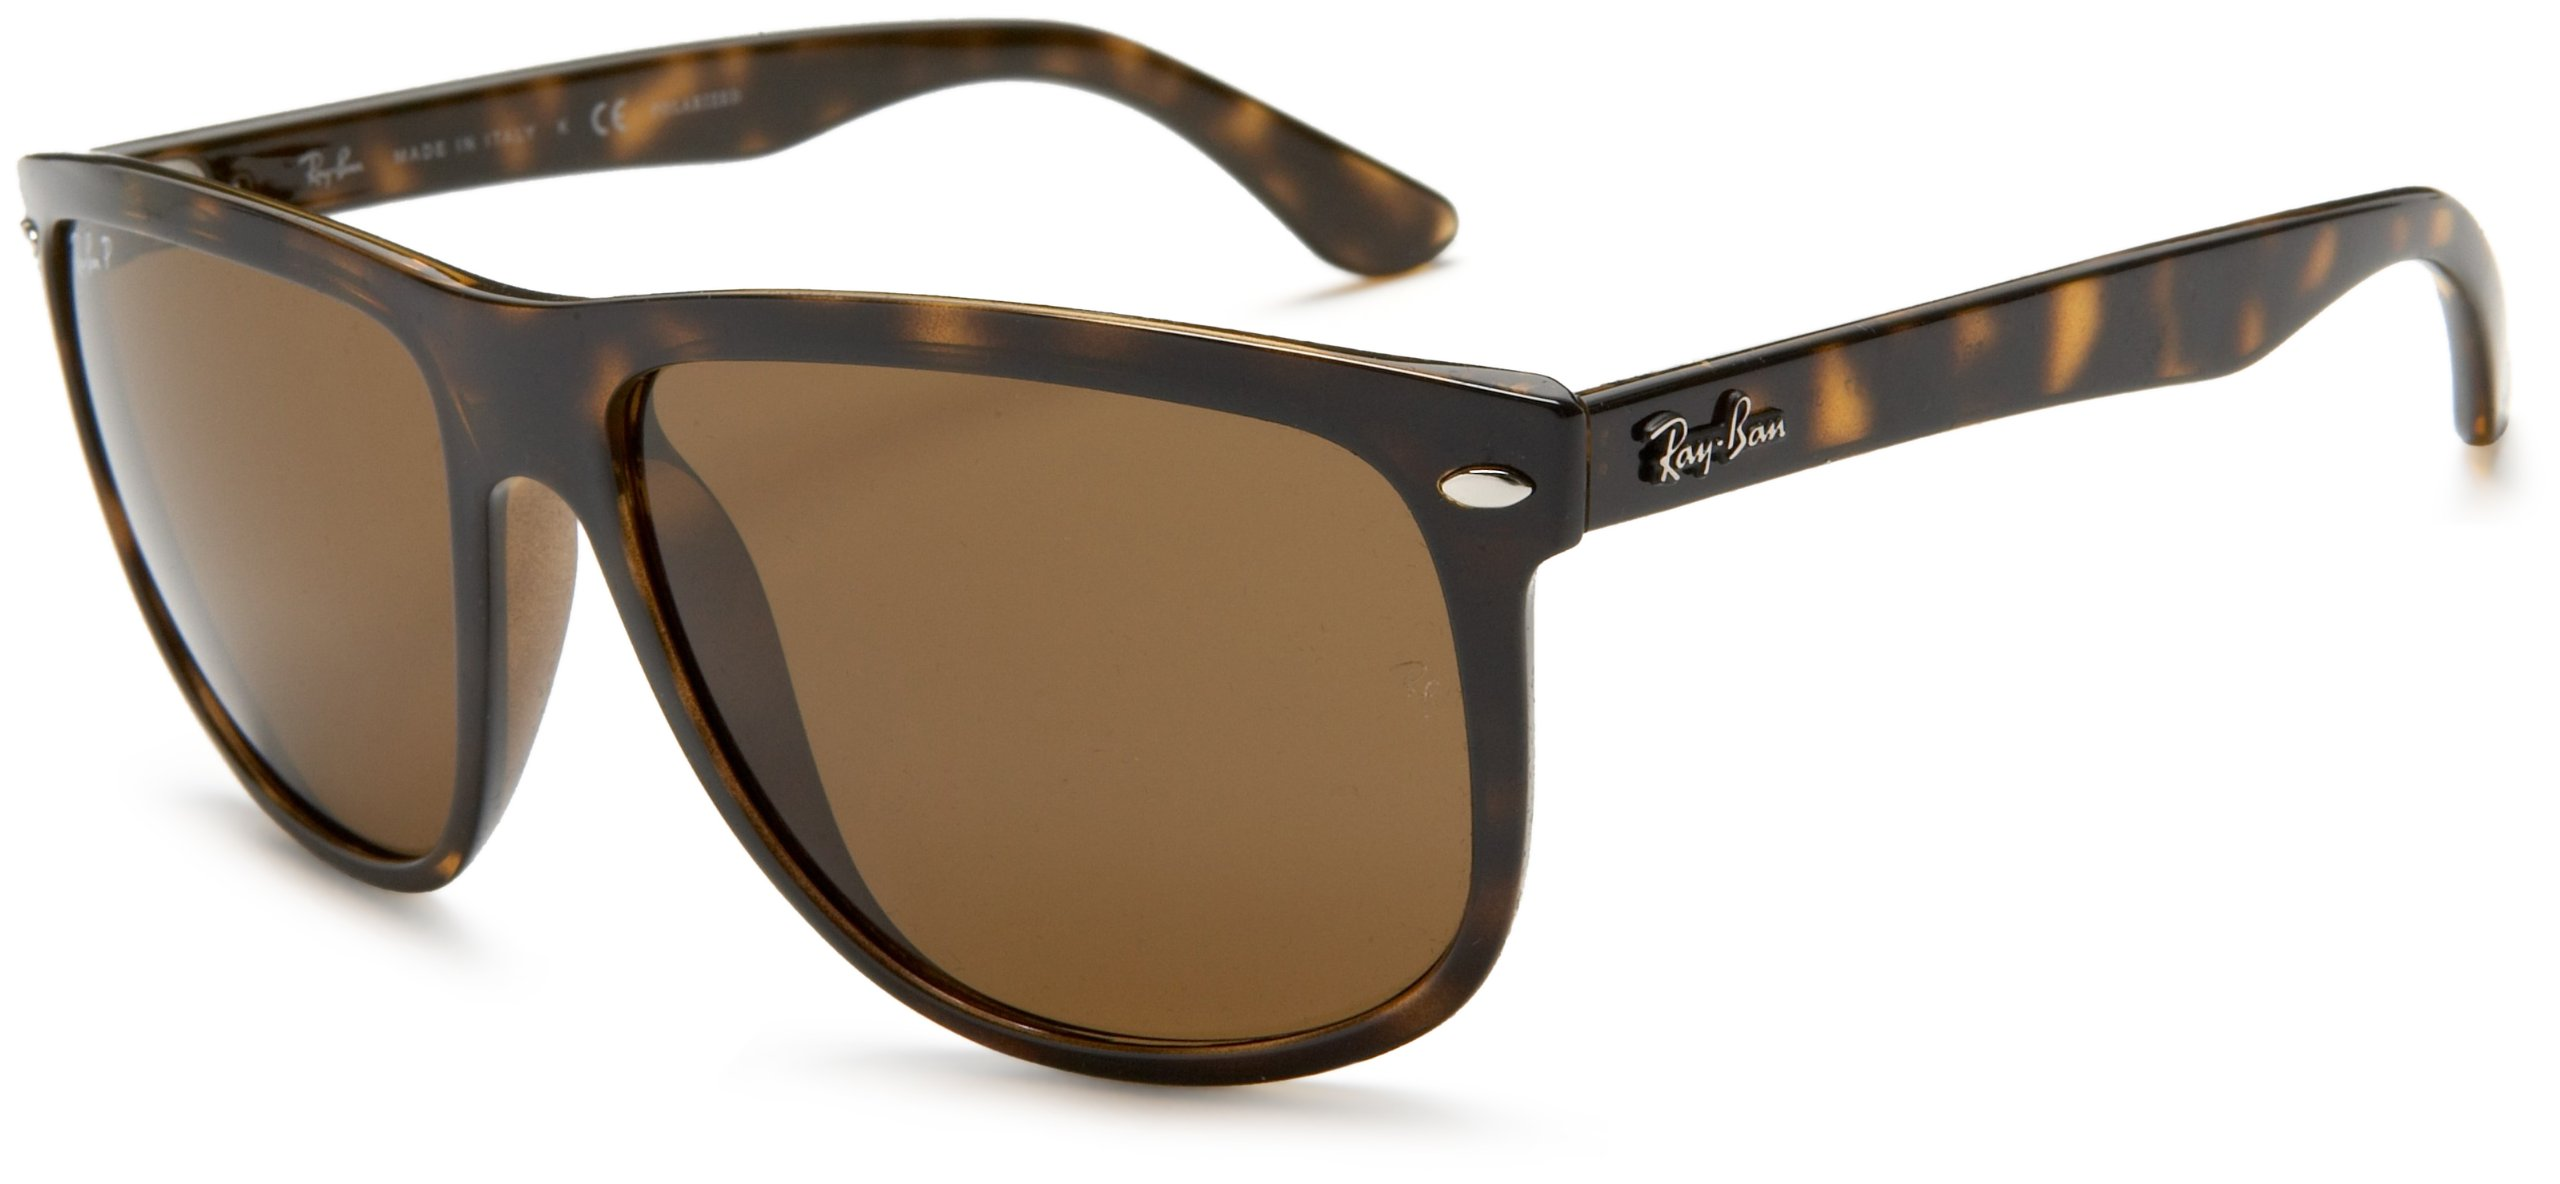 Ray-Ban RB4147 - Light Havana Frame Crystal Brown Polarized Lenses 60mm Polarized by Ray-Ban